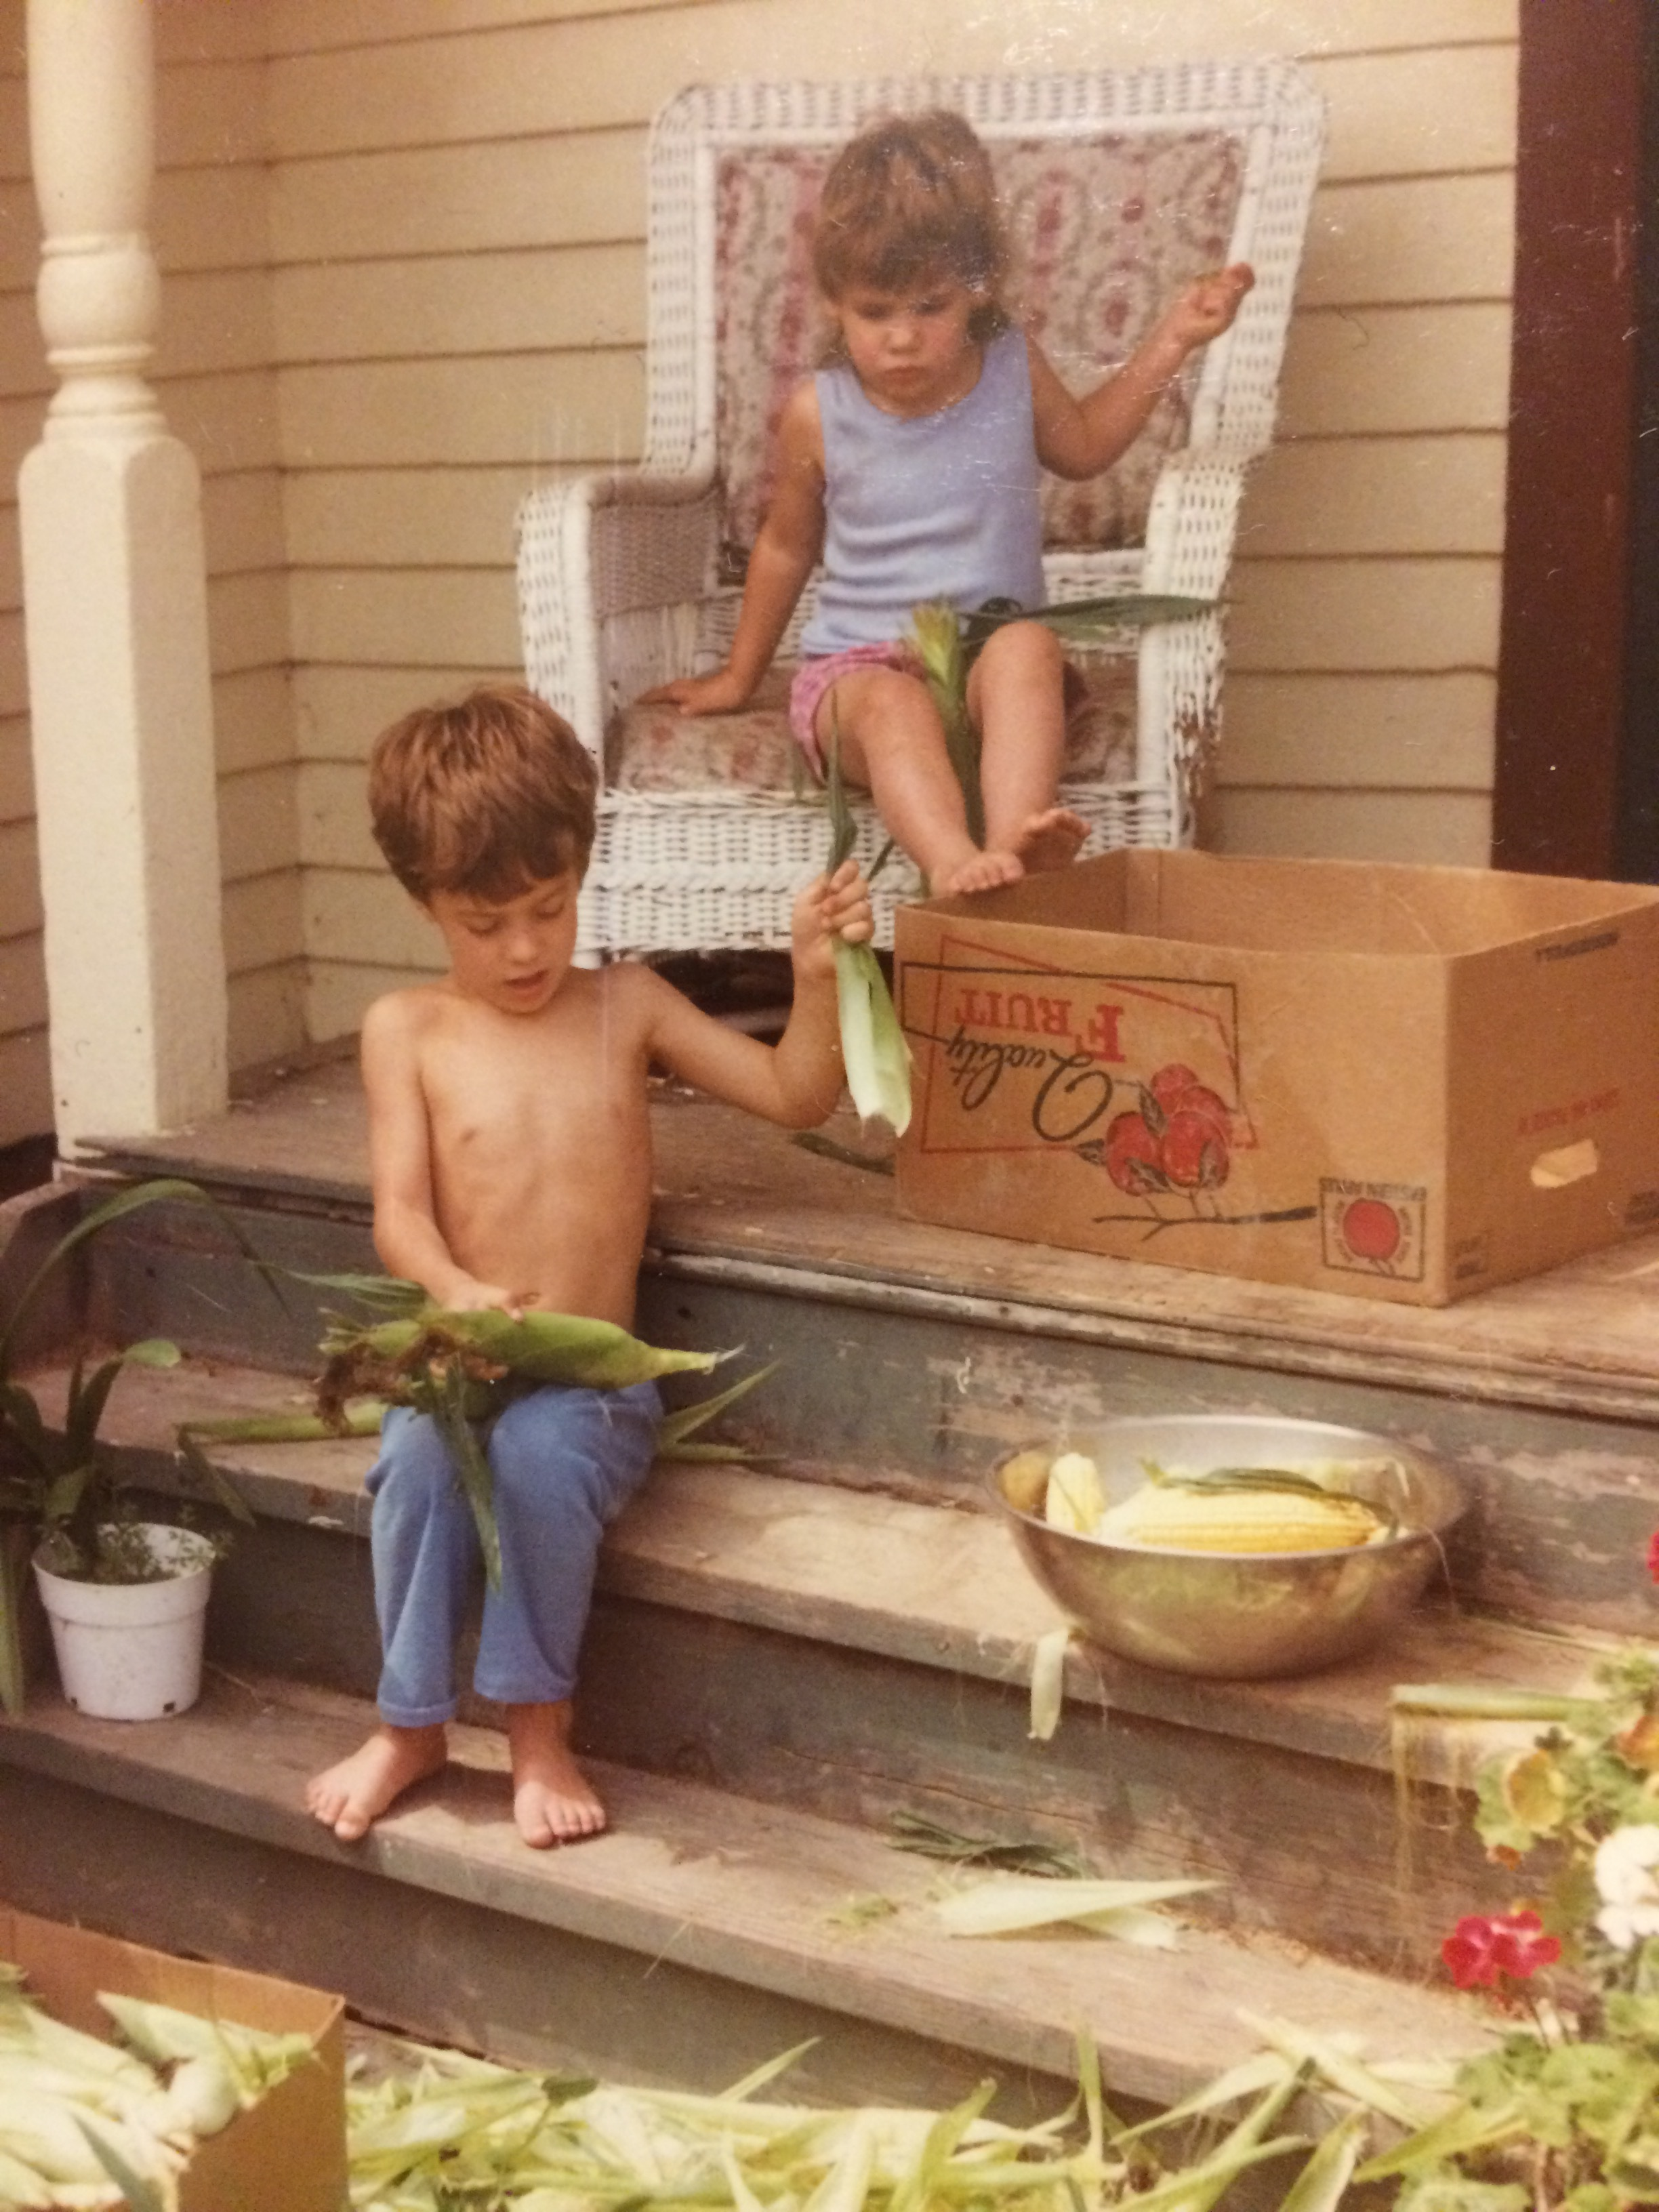 Aw, Shucks - I couldn't find a first day of school picture, so instead, here's a first day of summer picture with my brother and I shucking corn.